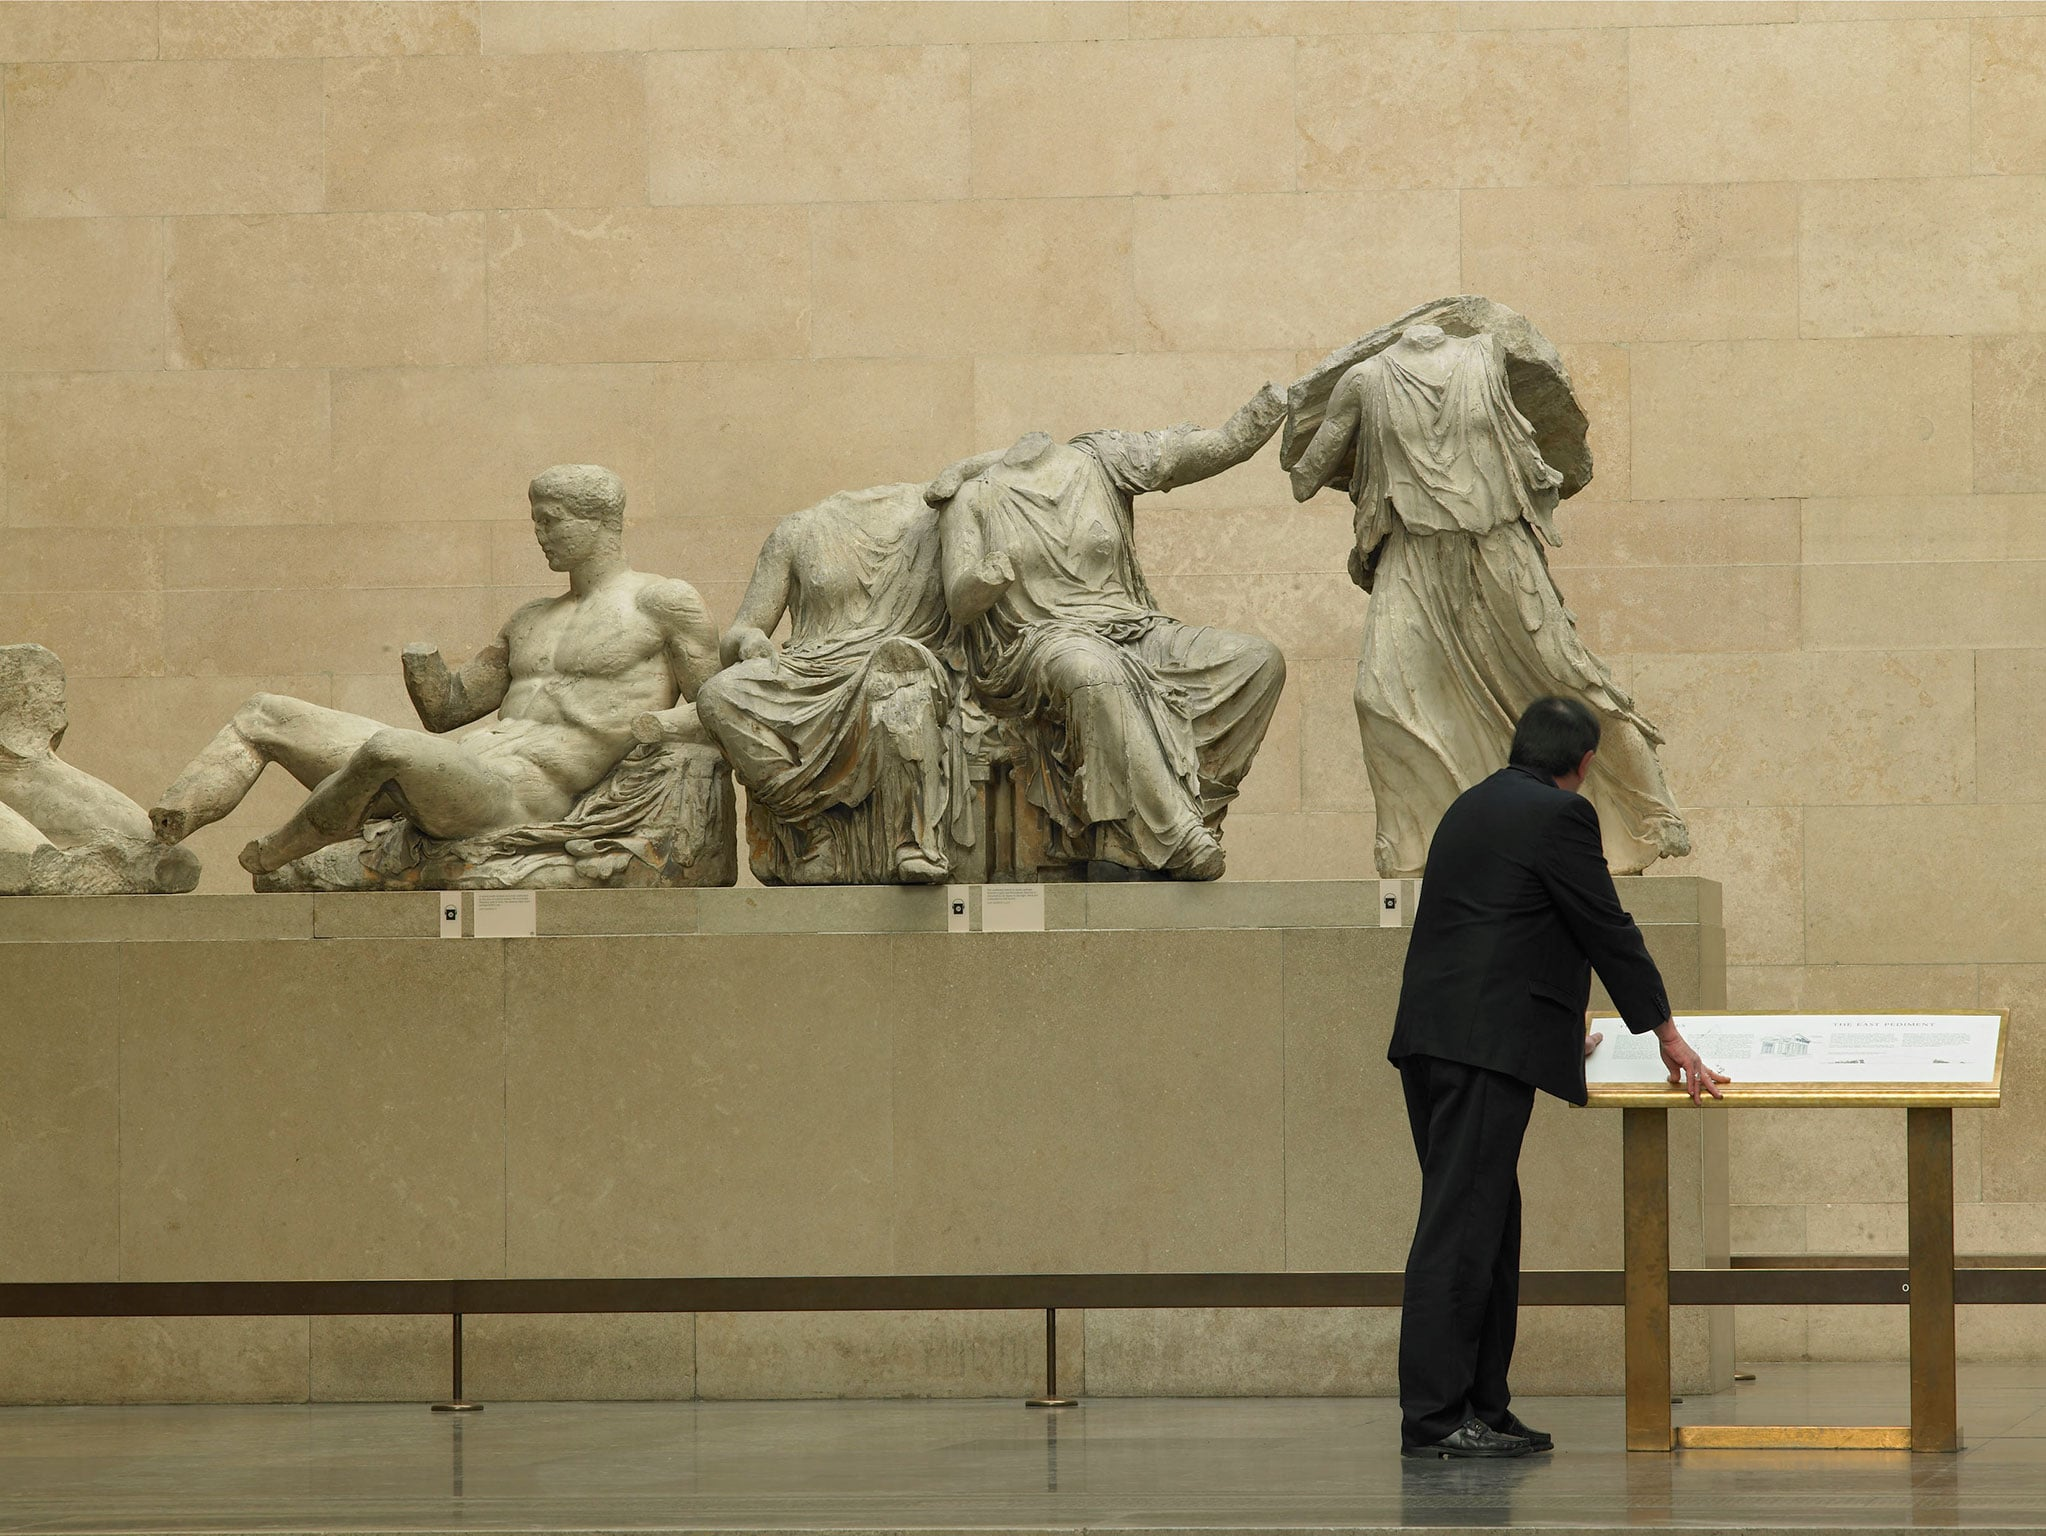 british museums and galleries essay Discover the ancient greece and rome galleries at the british museum.